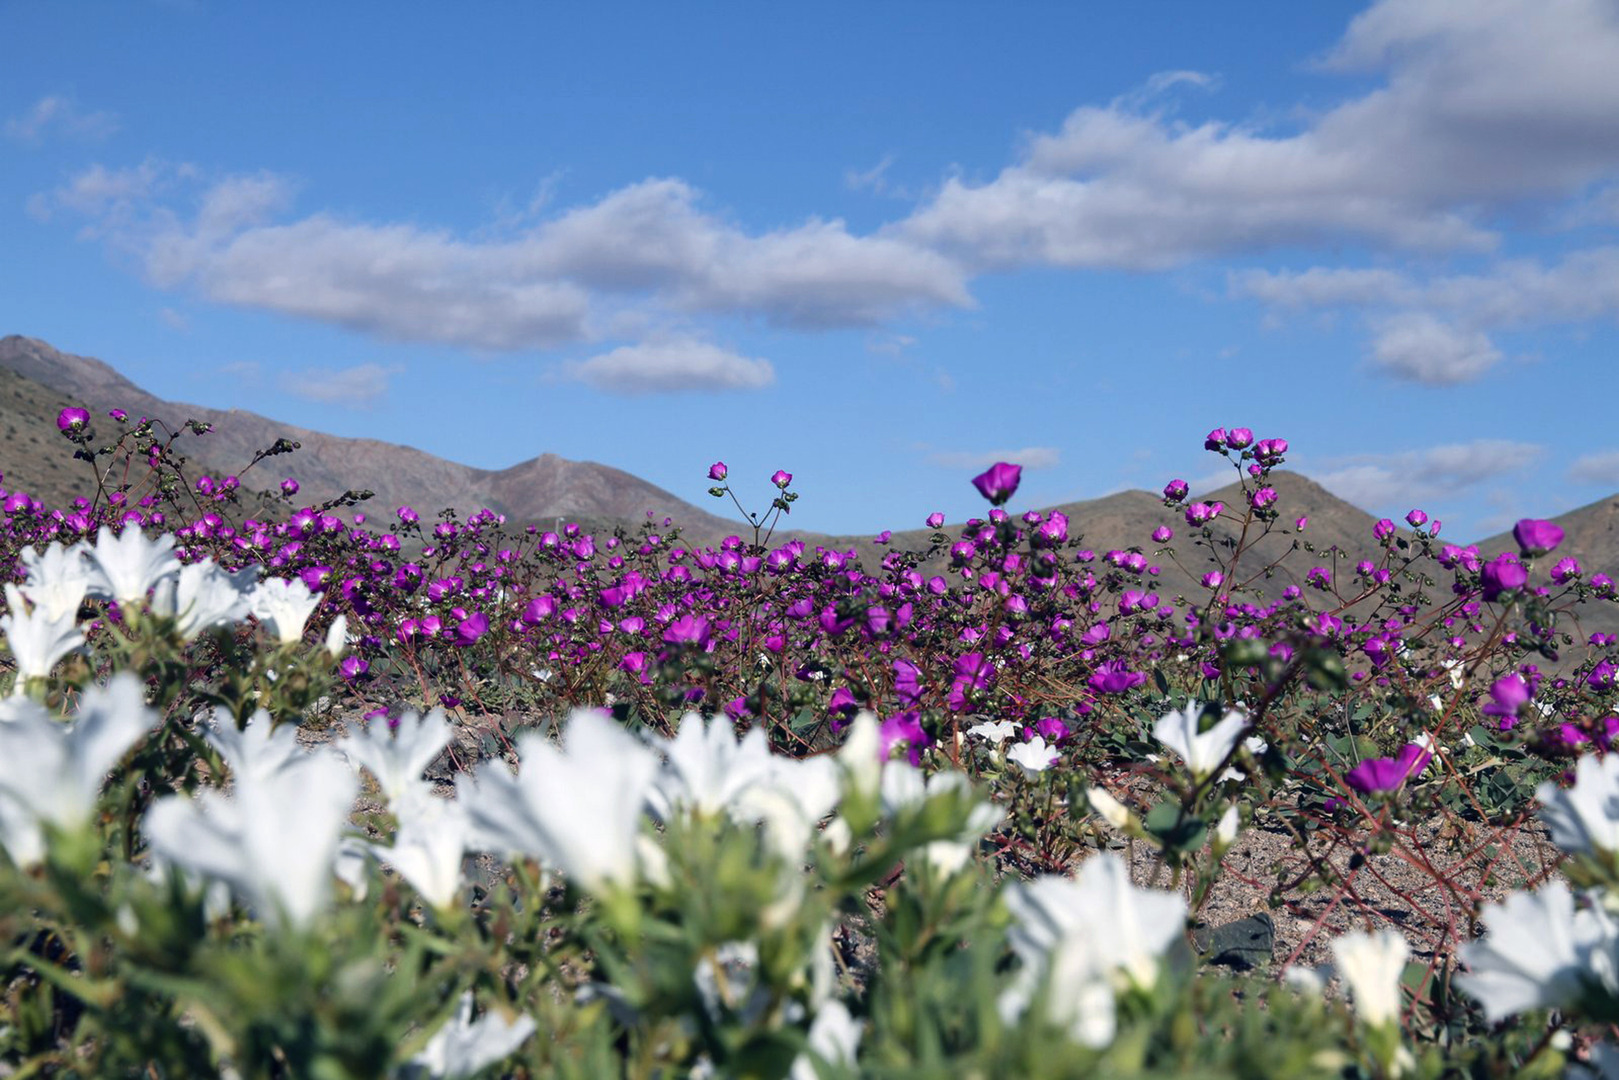 Flowers bloom at the Huasco region on the Atacama desert, some 600 km north of Santiago on November 27, 2015. A gigantic mantle of multicolored flowers covers the Atacama Desert, the driest in the world, with an intensity not seen in decades, an effect caused by the El Niño phenomenon, which alters weather patterns across the Pacific basin. AFP PHOTO / CARLOS AGUILAR